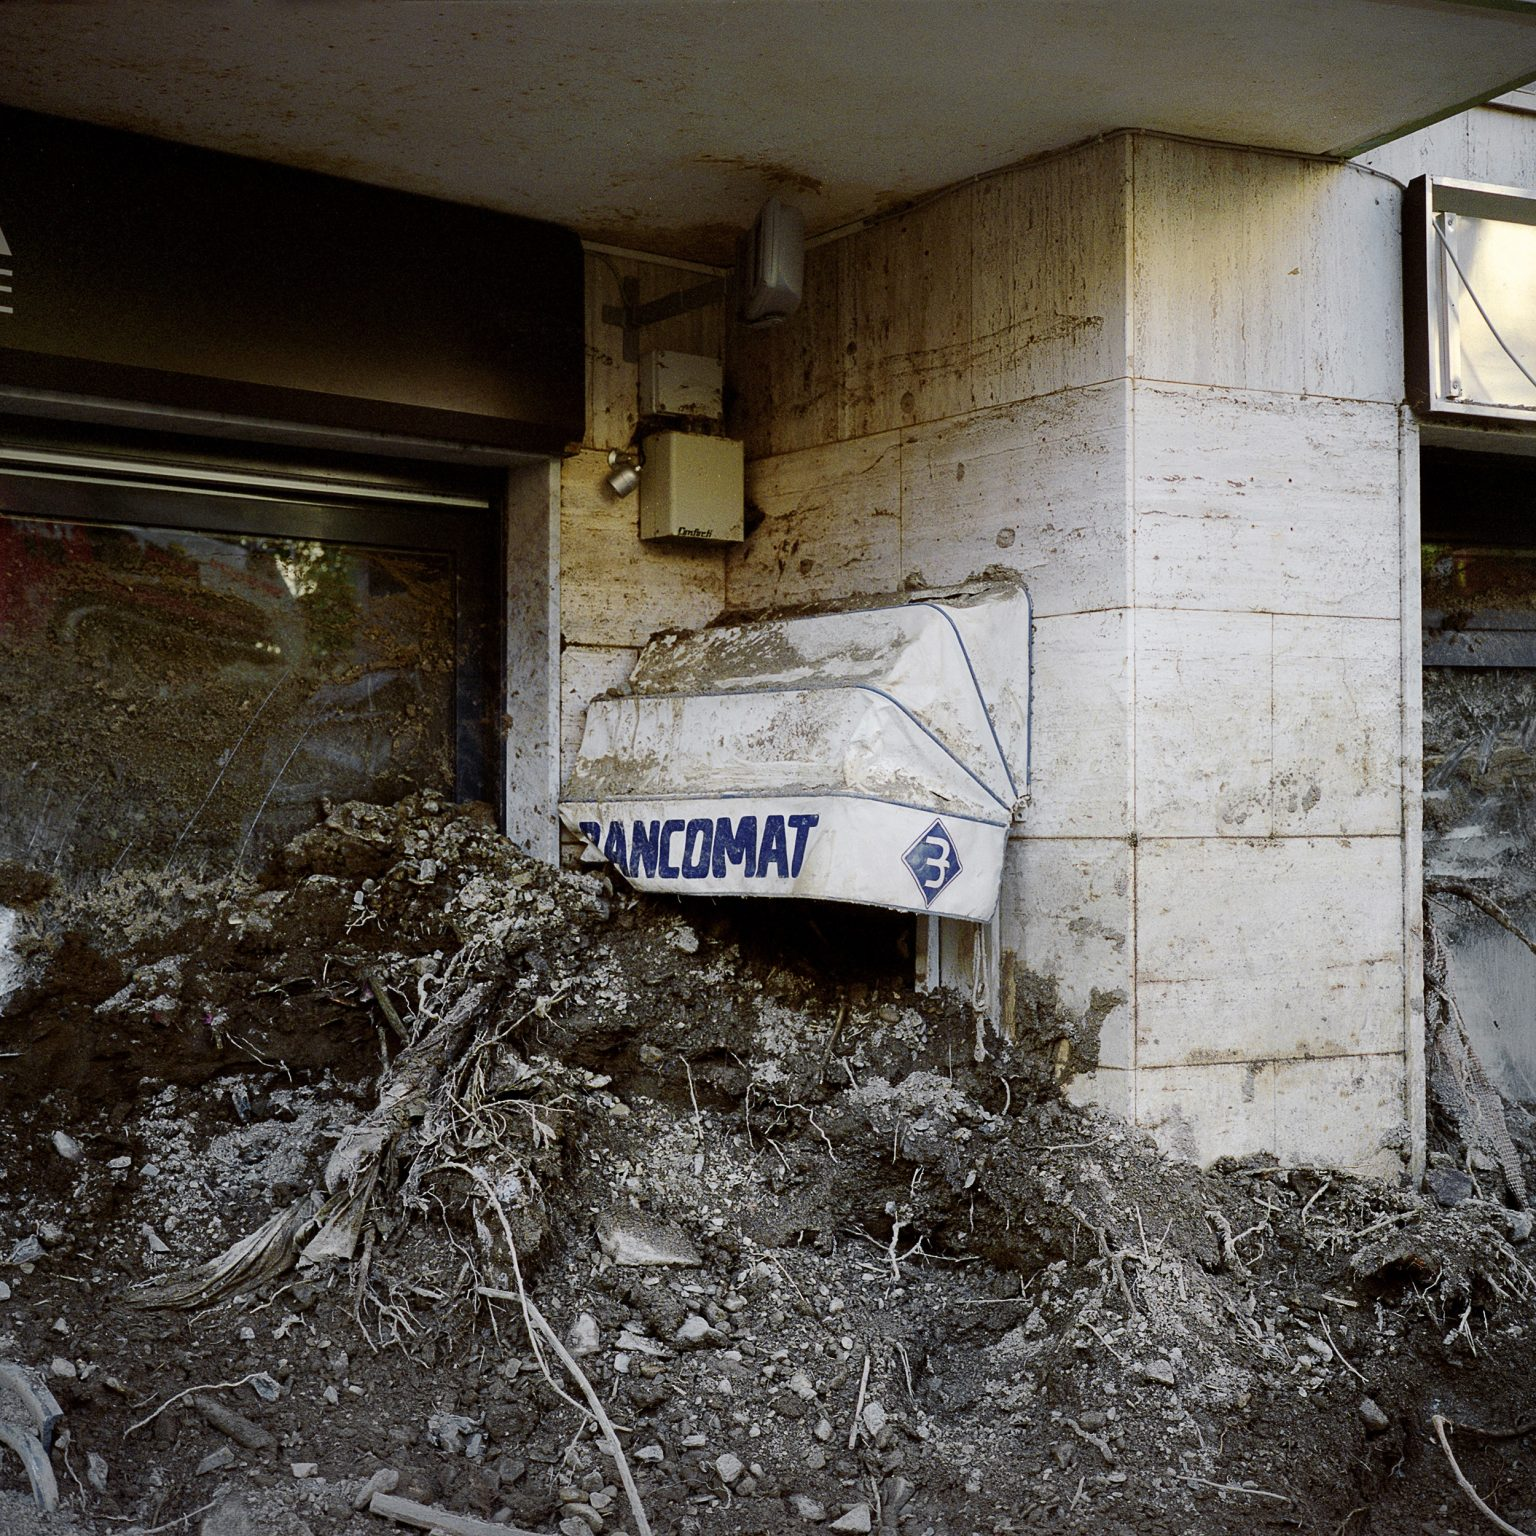 Monterosso al Mare, 5 Terre, October 2011. After the intense rain the town was hit by a severe flood that caused 1 death and much damage to the buildings and economic activities. An ATM machine in the main road of Monterosso covered in mud